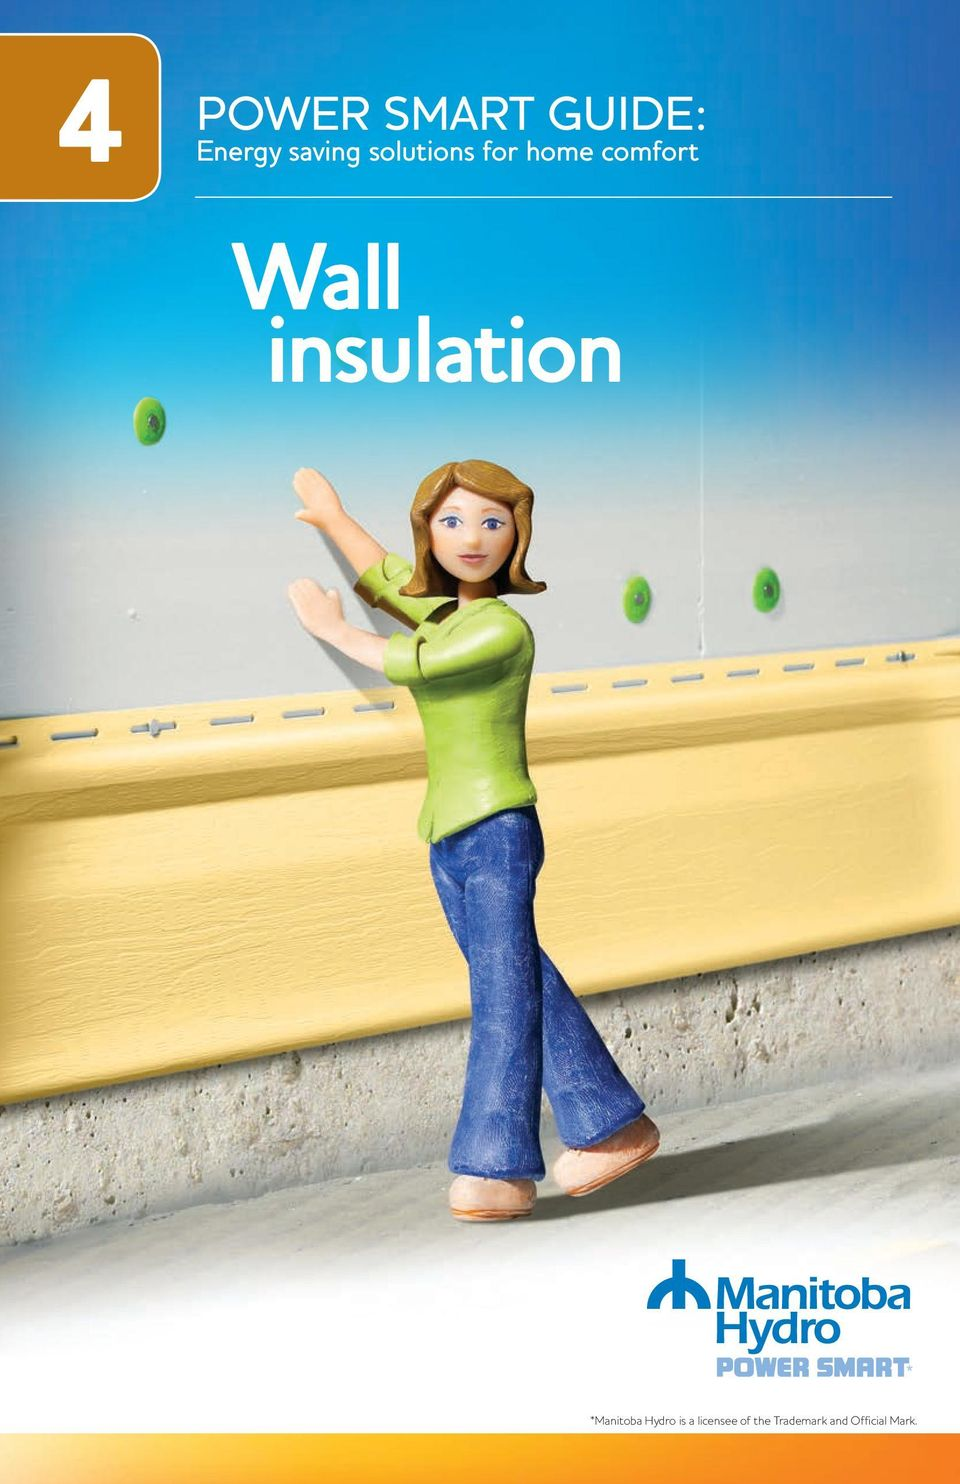 insulation *Manitoba Hydro is a